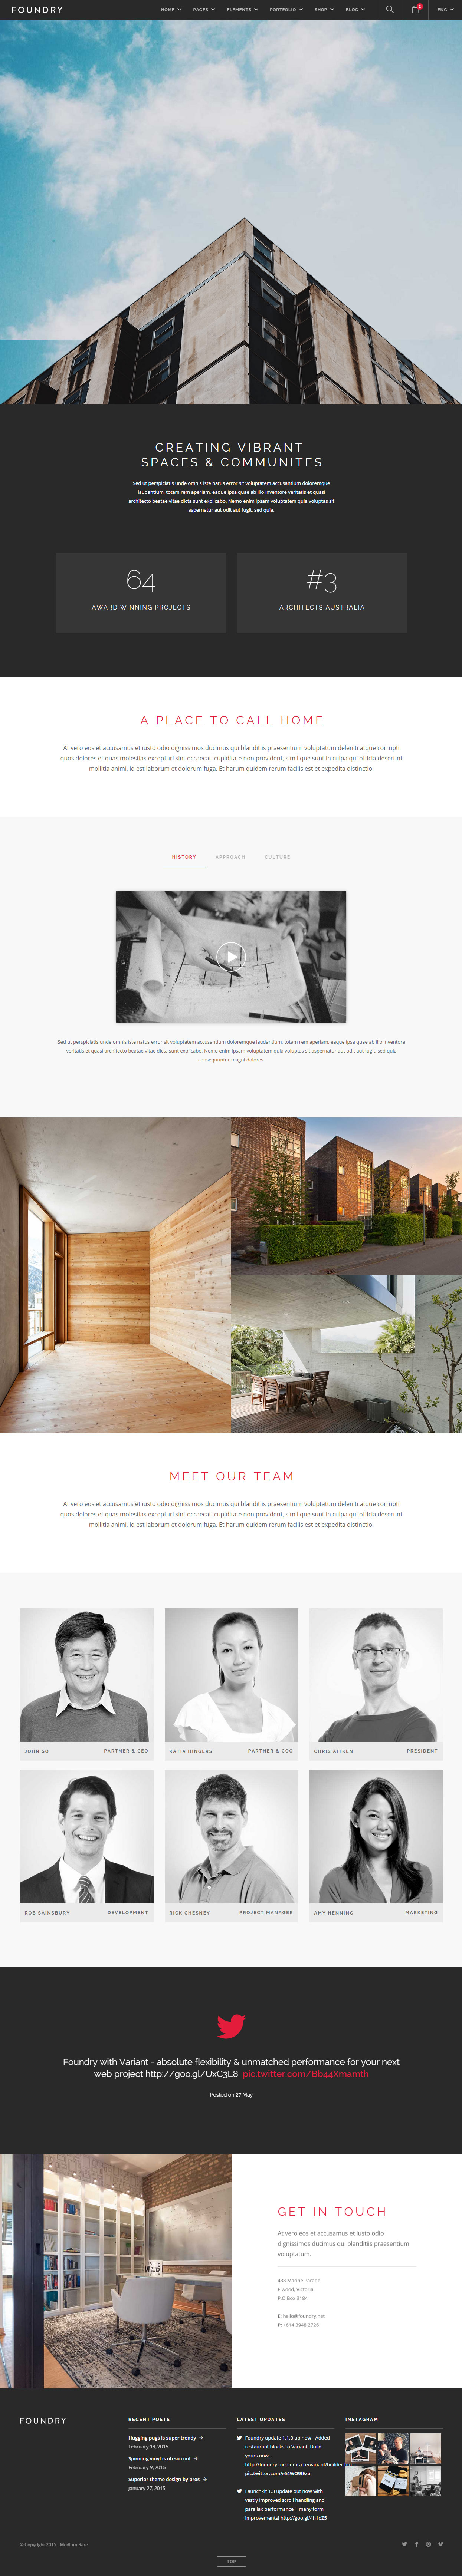 30 best responsive architect website templates 2017 for Best architects websites